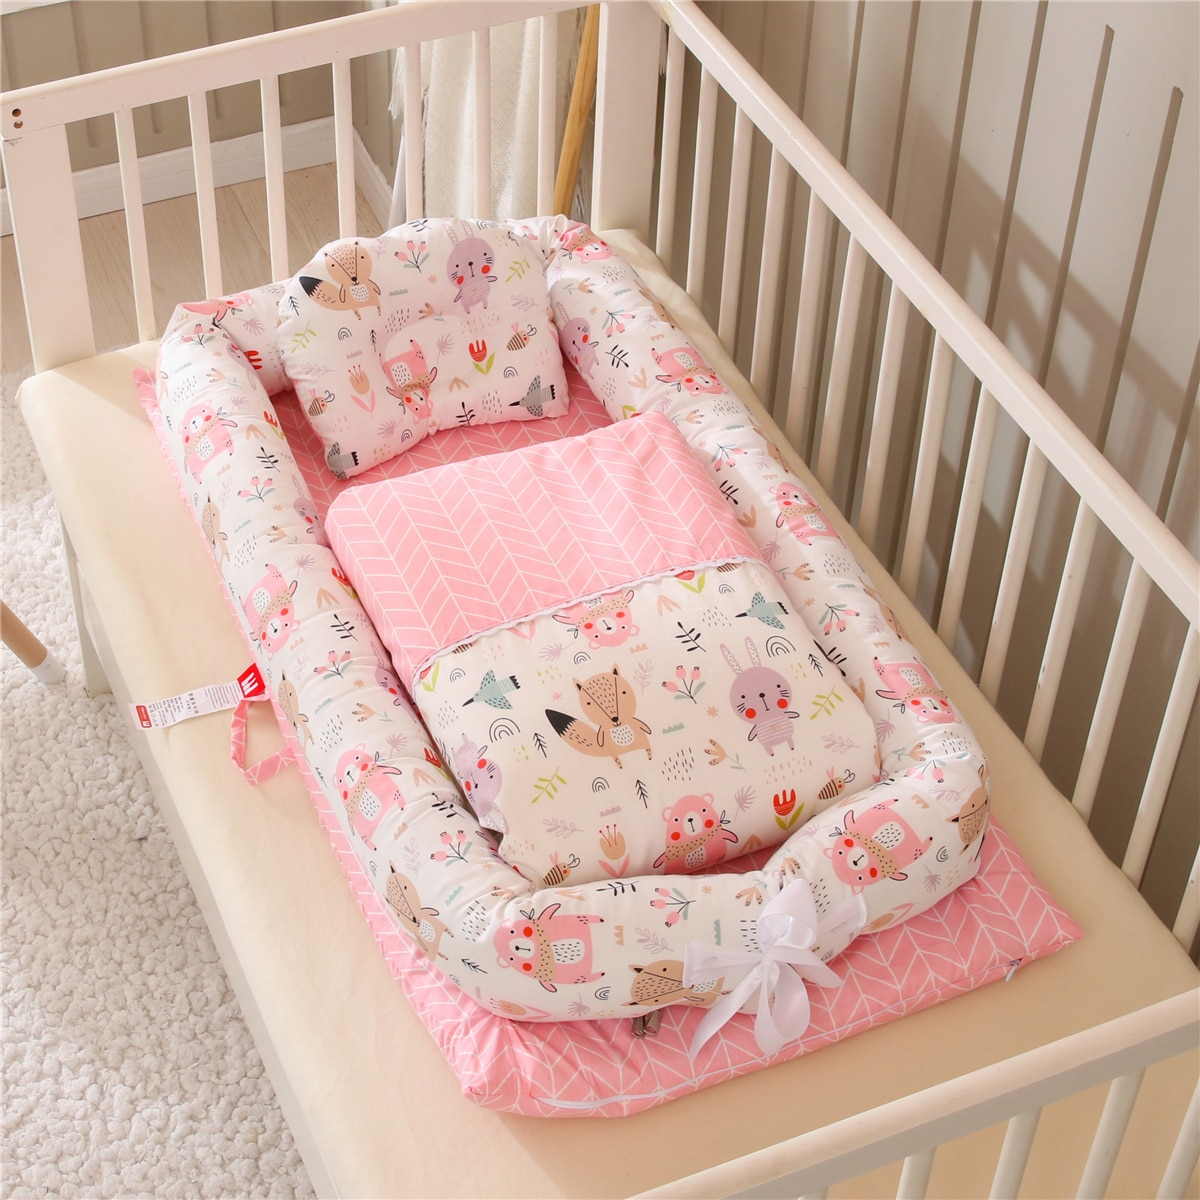 Portable Baby Nest Bed with Quilt Travel Bed Infant Toddler Cotton Crib for Newborn Babynest Bed